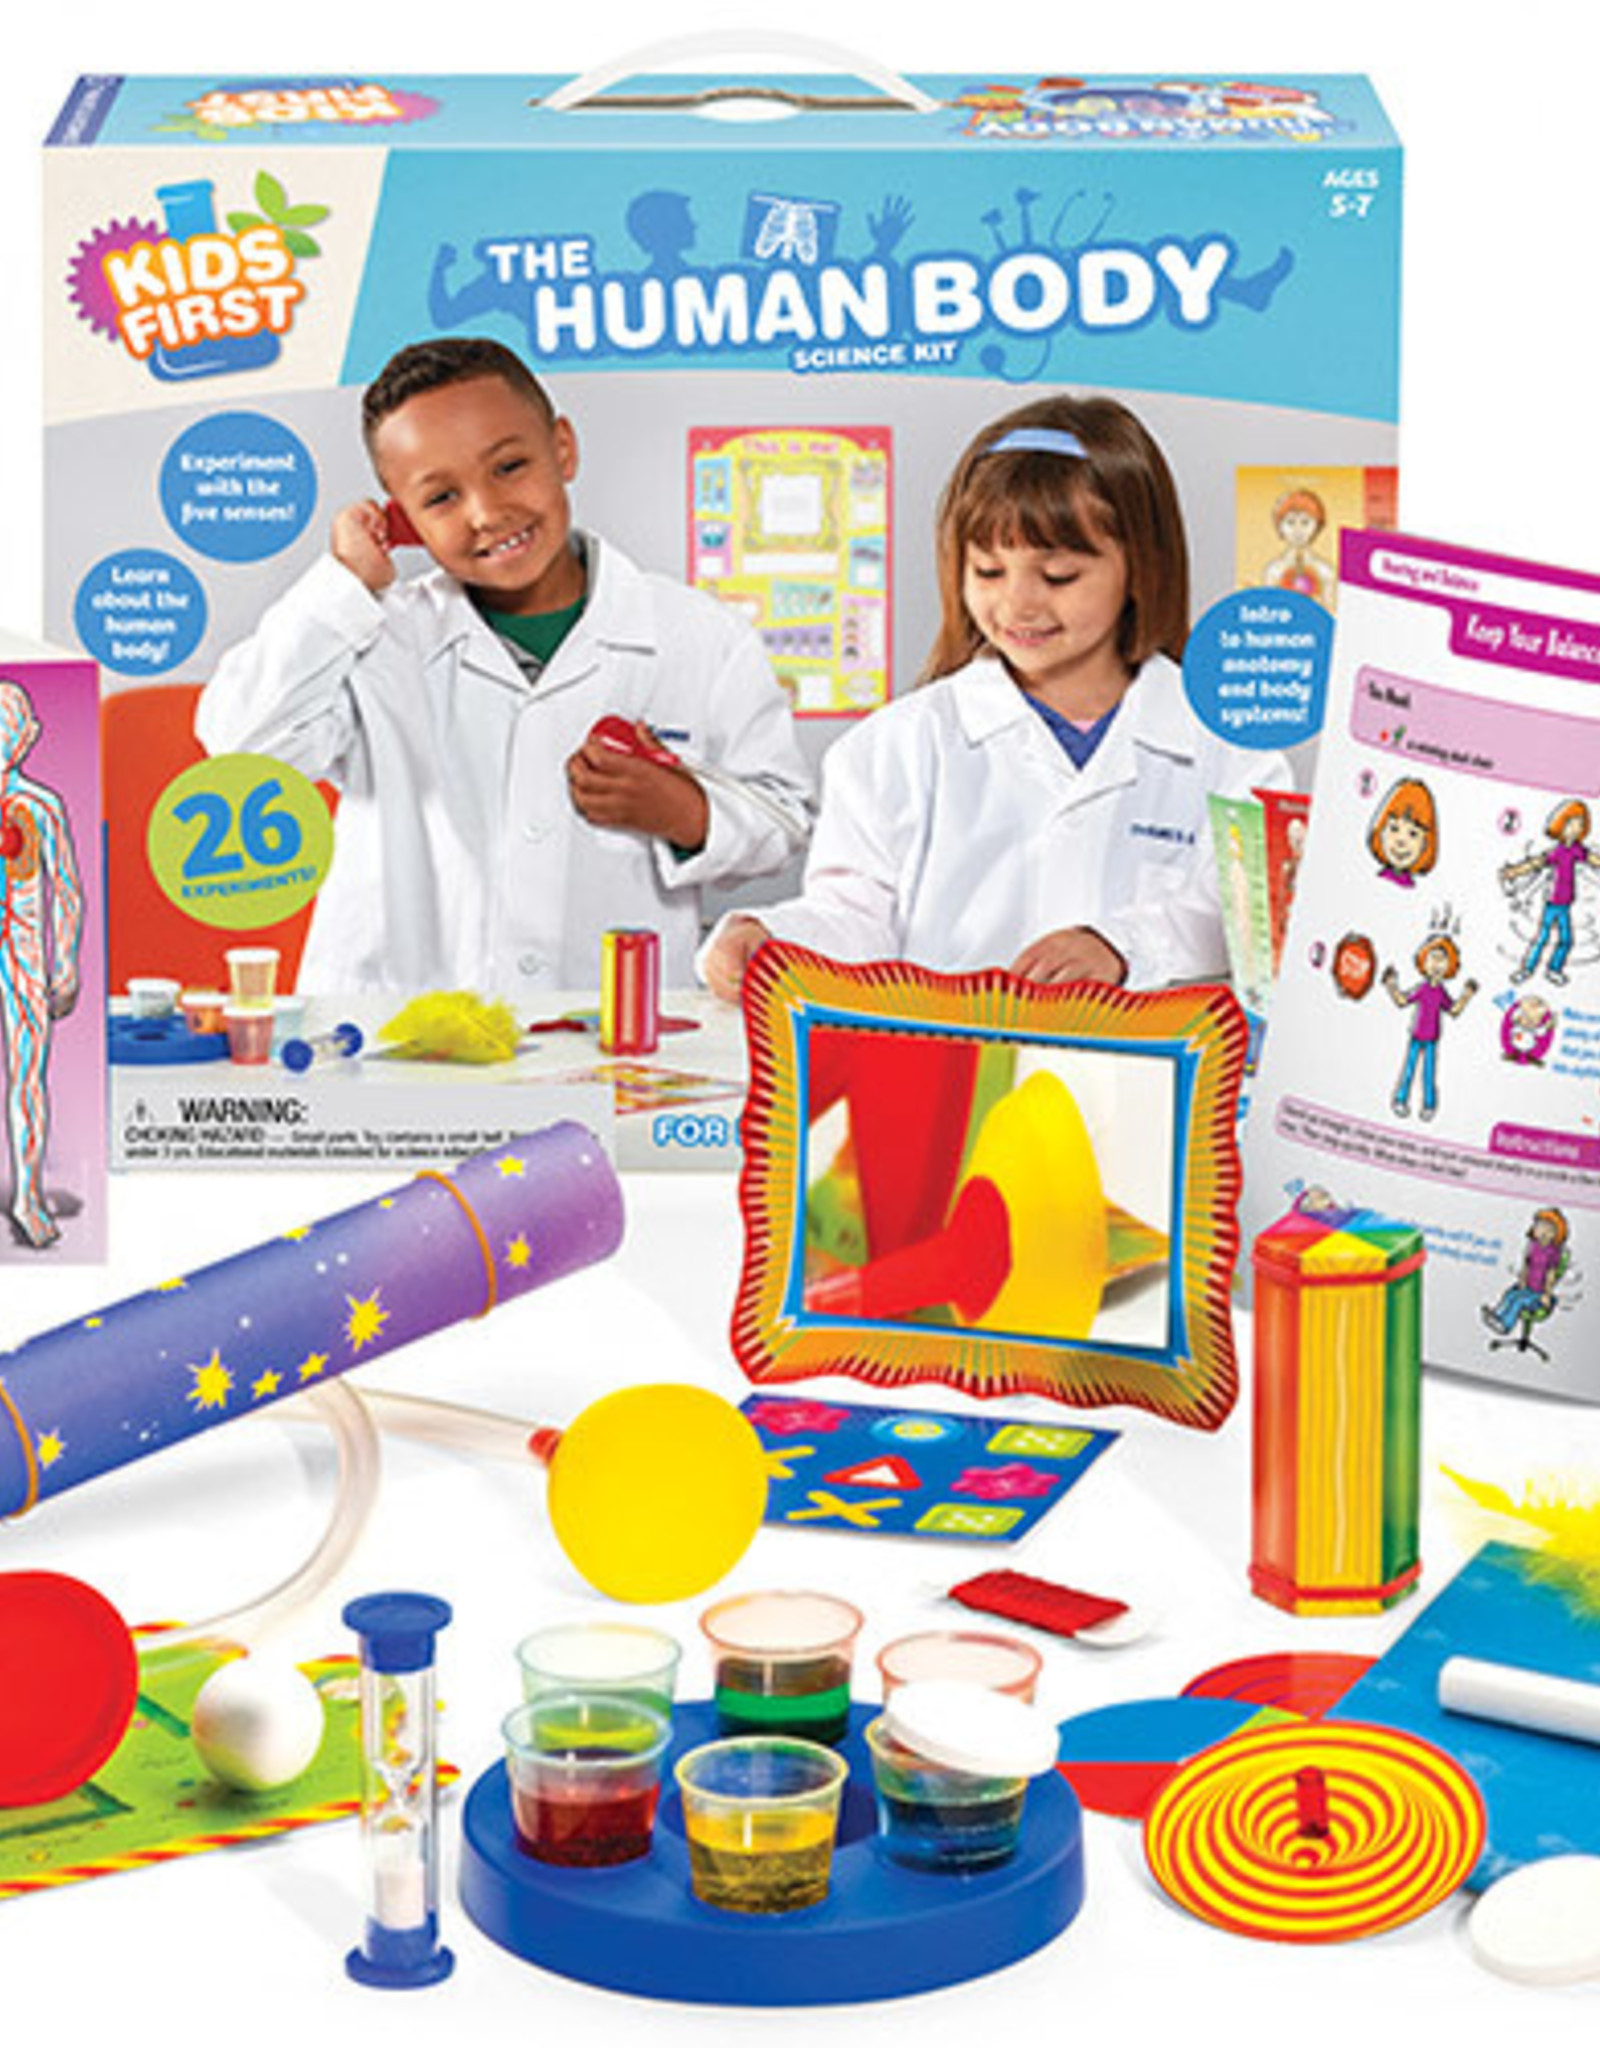 KIDS FIRST THE HUMAN BODY